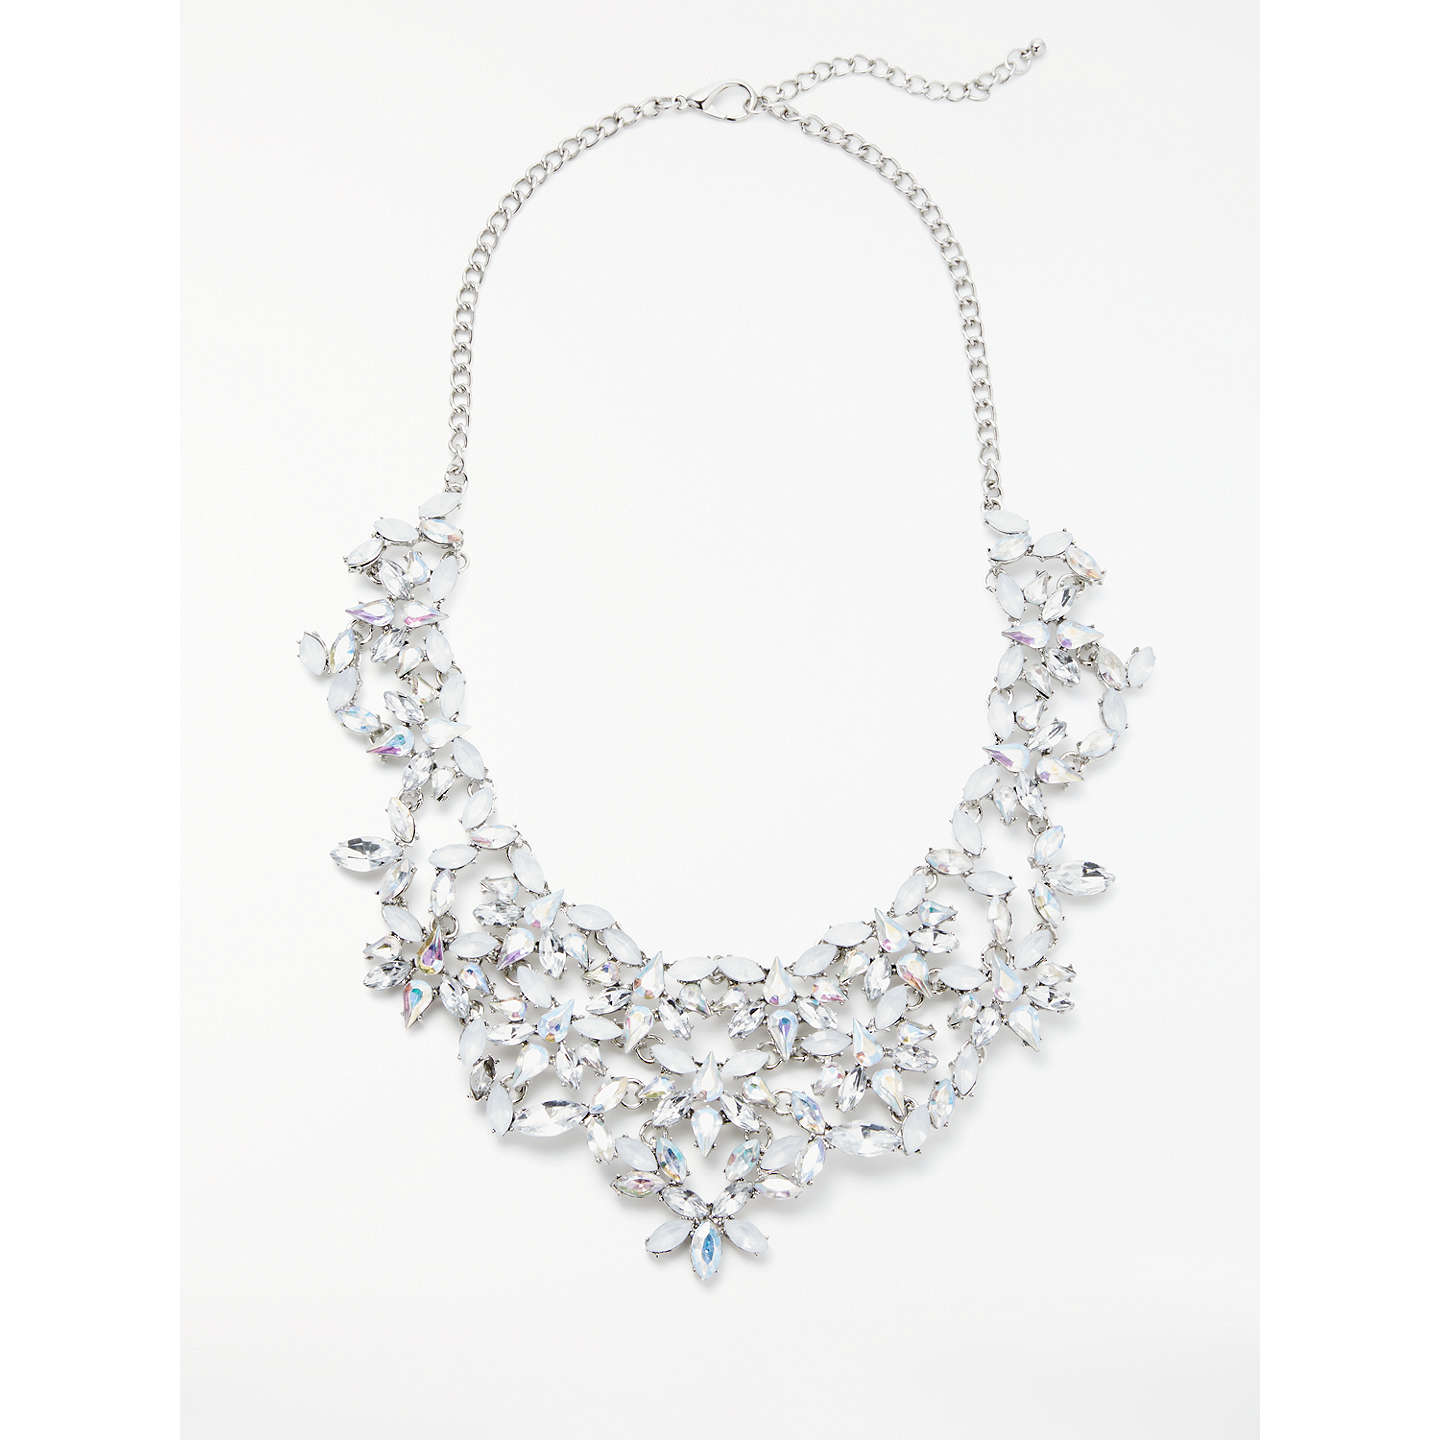 atxi rhinestones art necklace silver boho maxi statement deco crystal bib plated diamante super